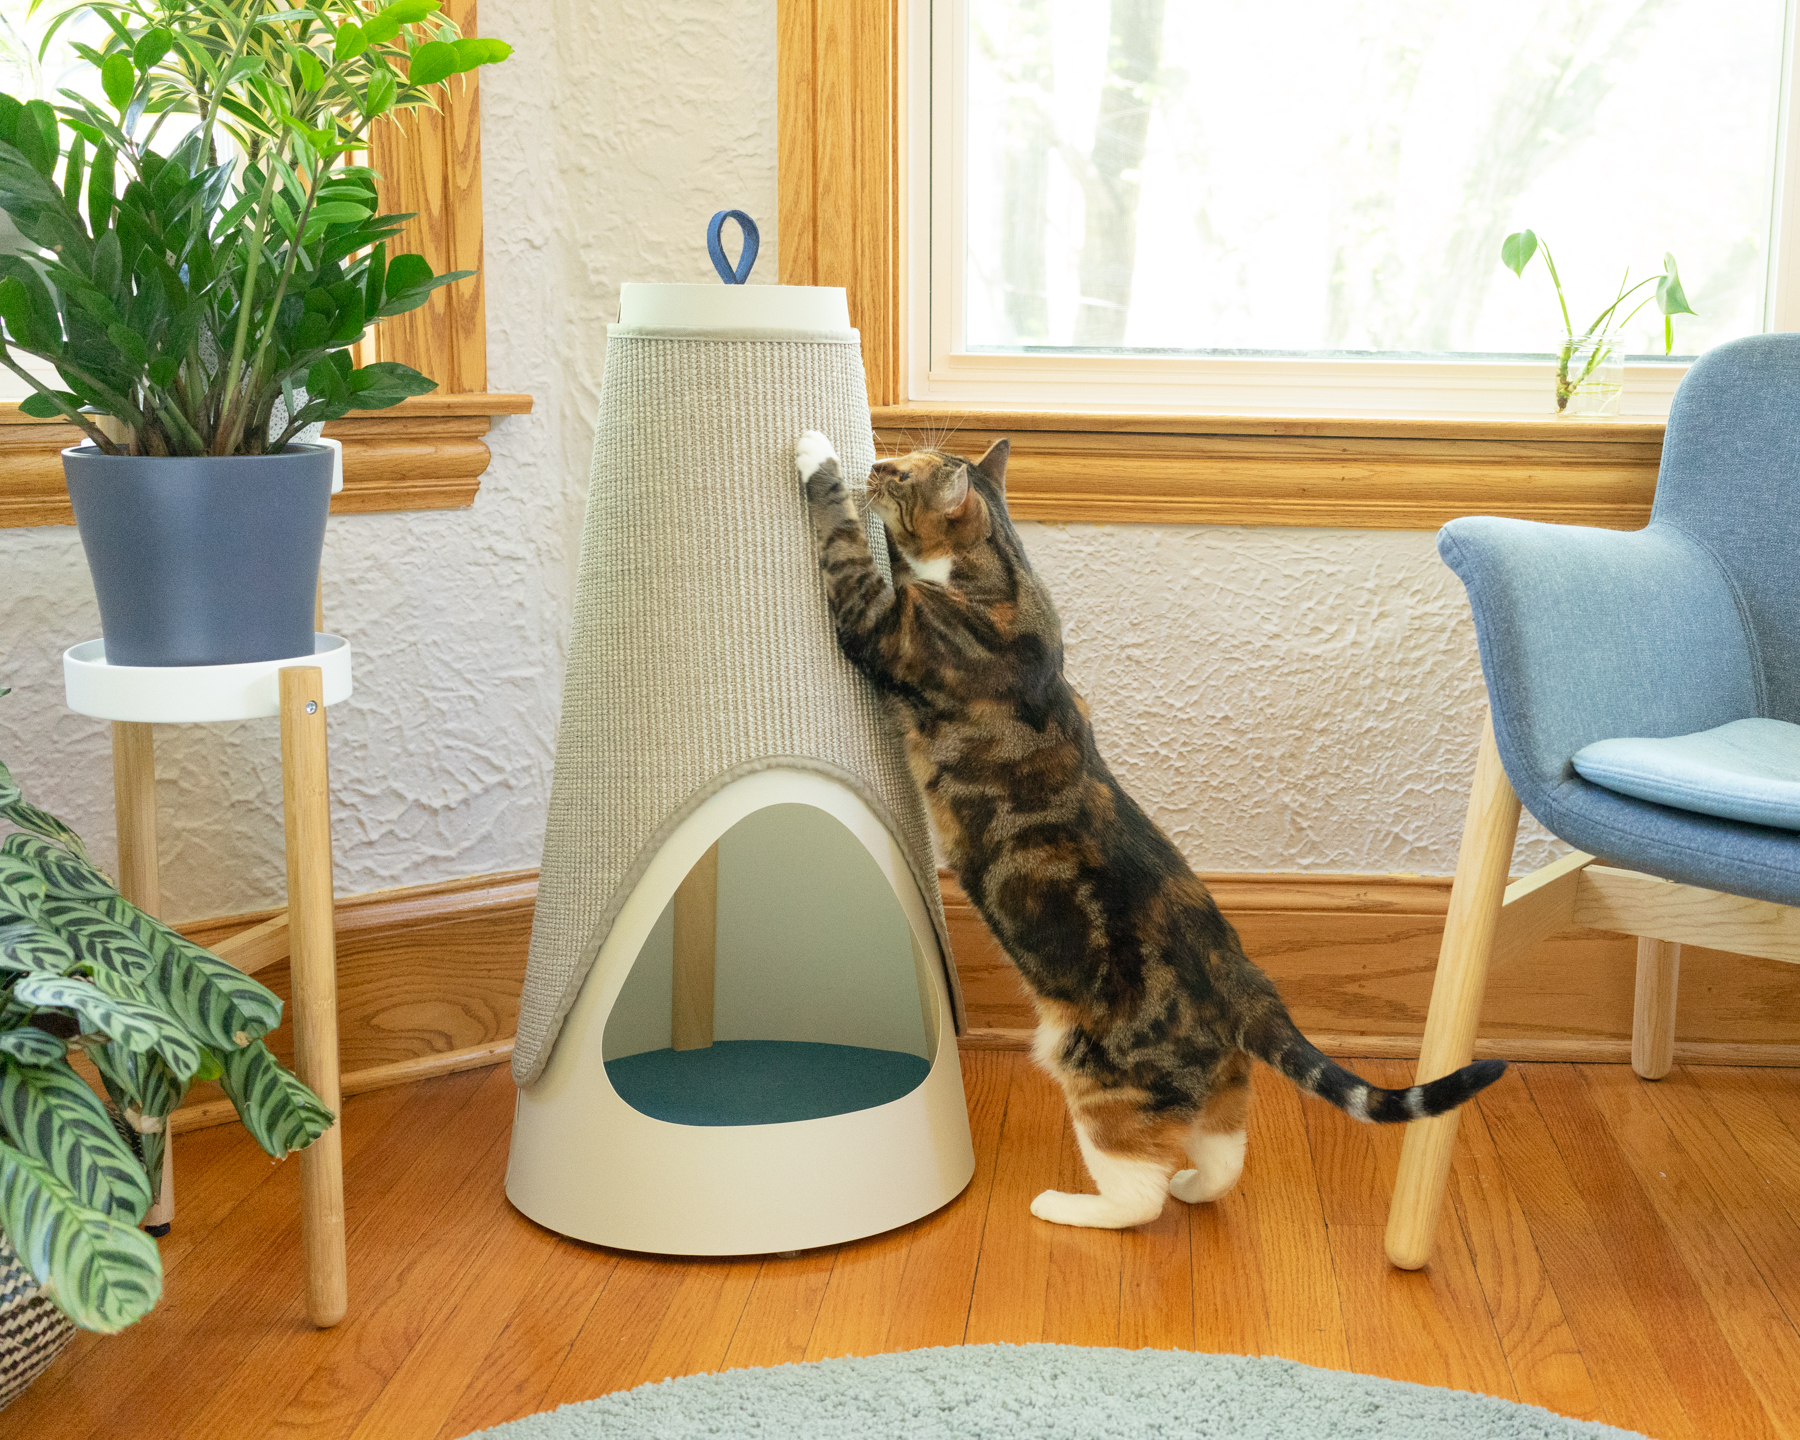 TALL & STURDY - In nature, cats scratch trees because they're tall, and don't tip or wobble. At home, the next best thing is your favorite armchair. We made the Cone to give cats a better option. At over 30 inches tall, the Cone lets cats fully stretch out when they scratch, and the weighted base makes it super stable.